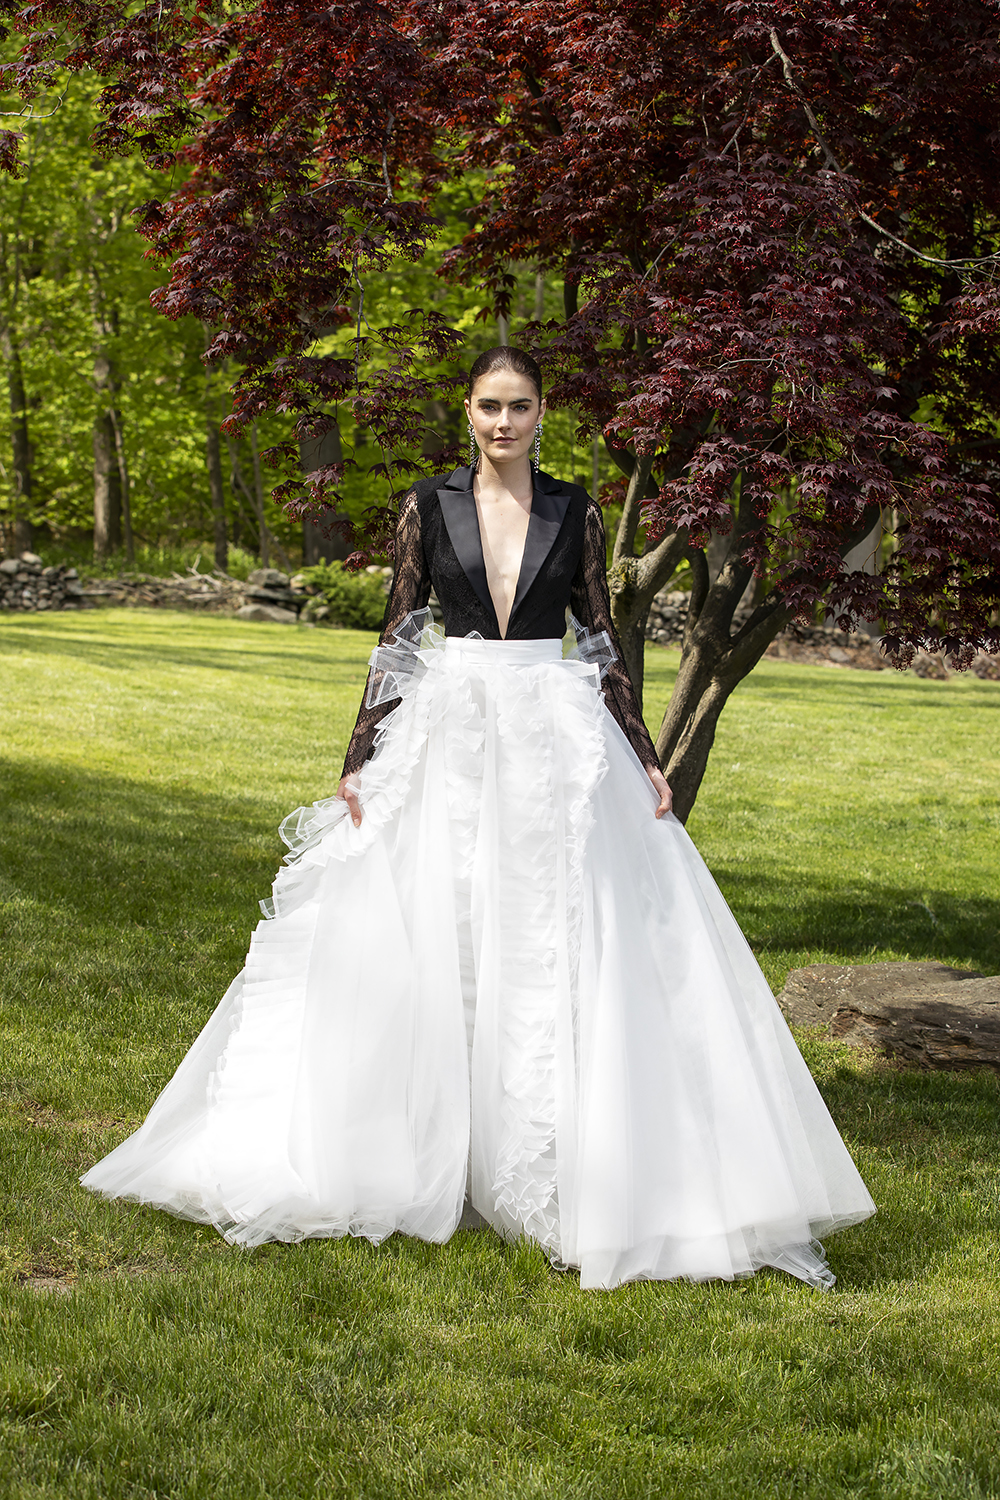 CROPPED LACE TUXEDO BODICE WITH ORGANZA AND TULLE BALL SKIRT BY CHRISTIAN SIRIANO